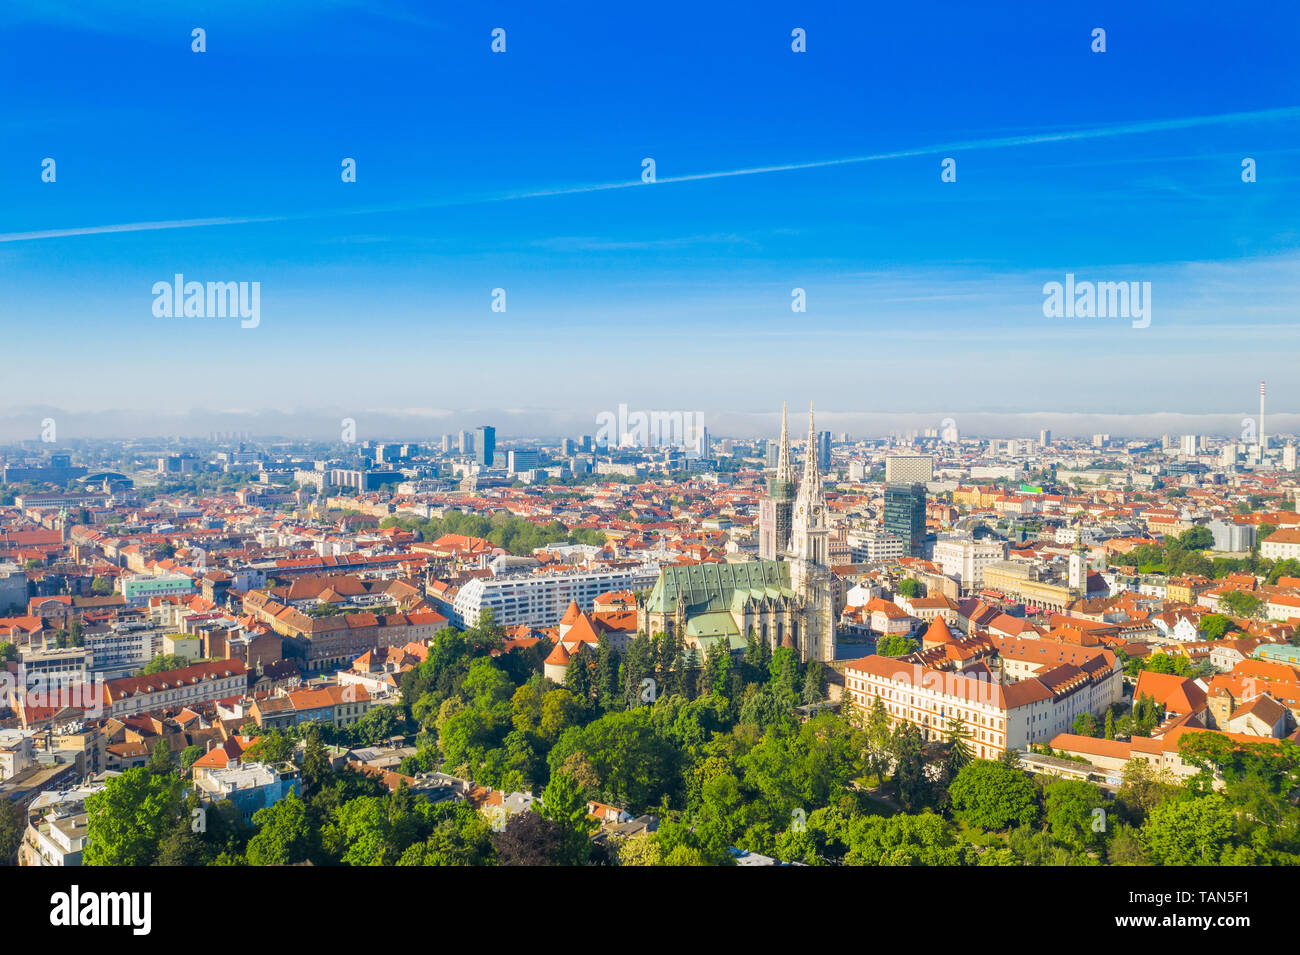 Zagreb Capital Of Croatia City Center Aerial View From Drone Cathedral Ribnjak Park And Upper Town Stock Photo Alamy